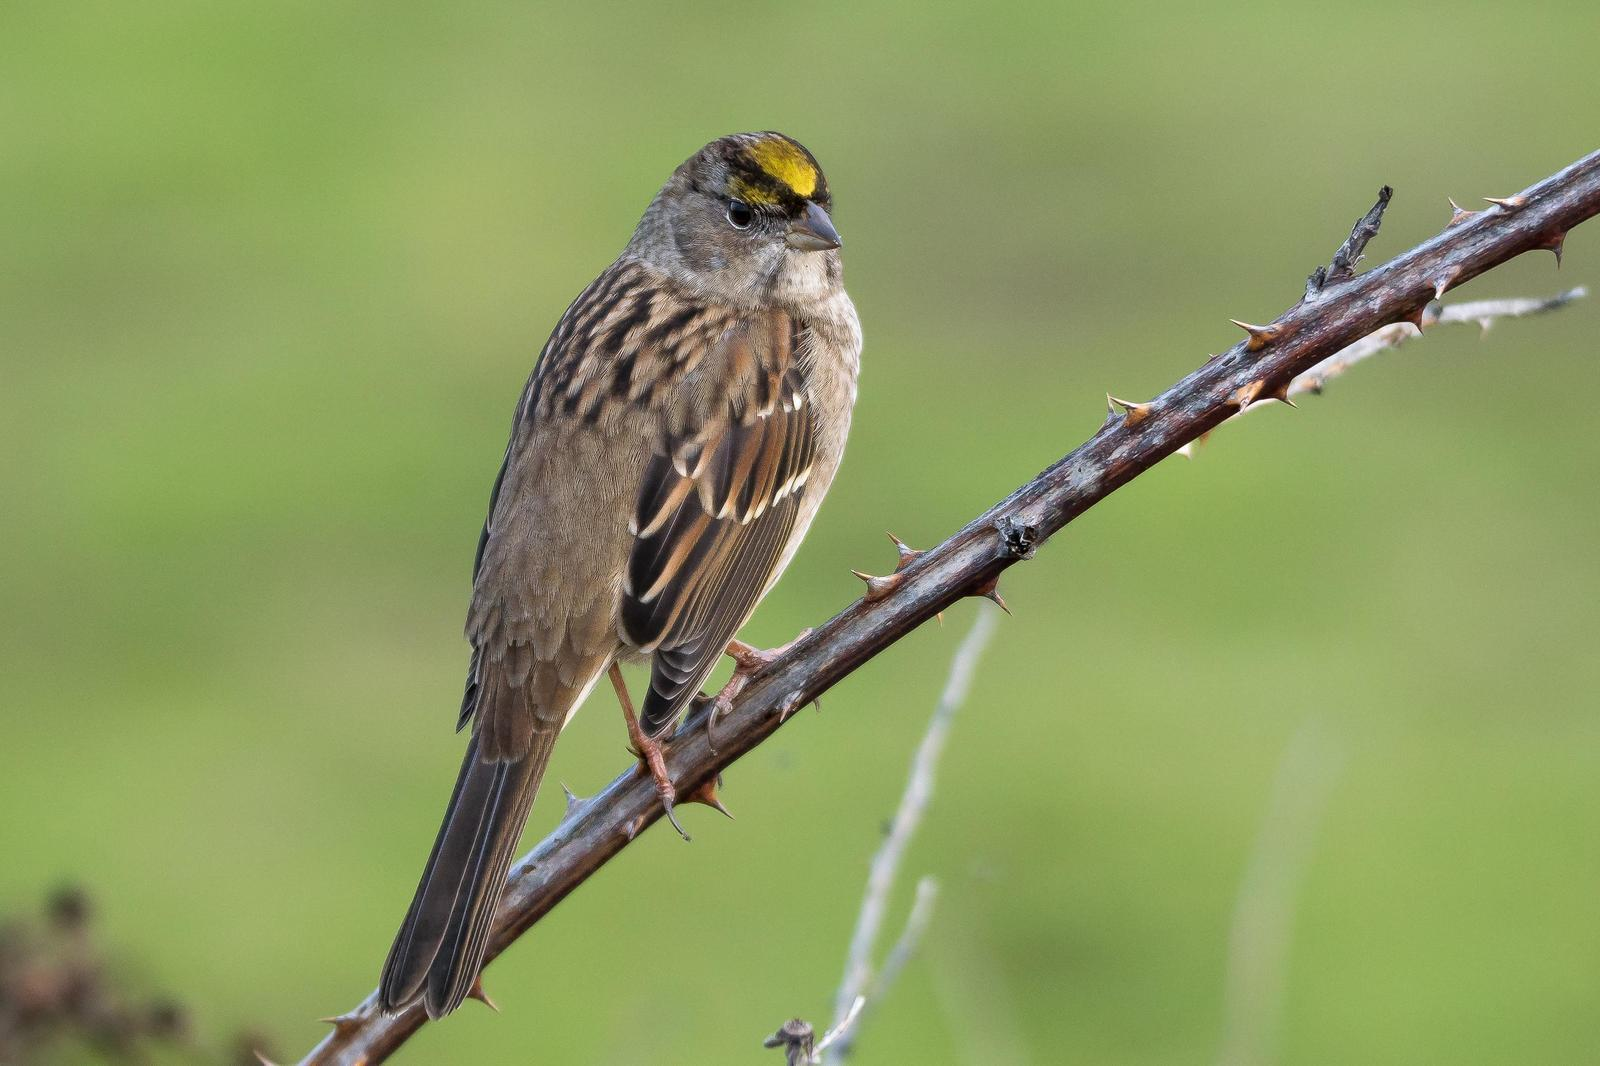 Golden-crowned Sparrow Photo by Gerald Hoekstra